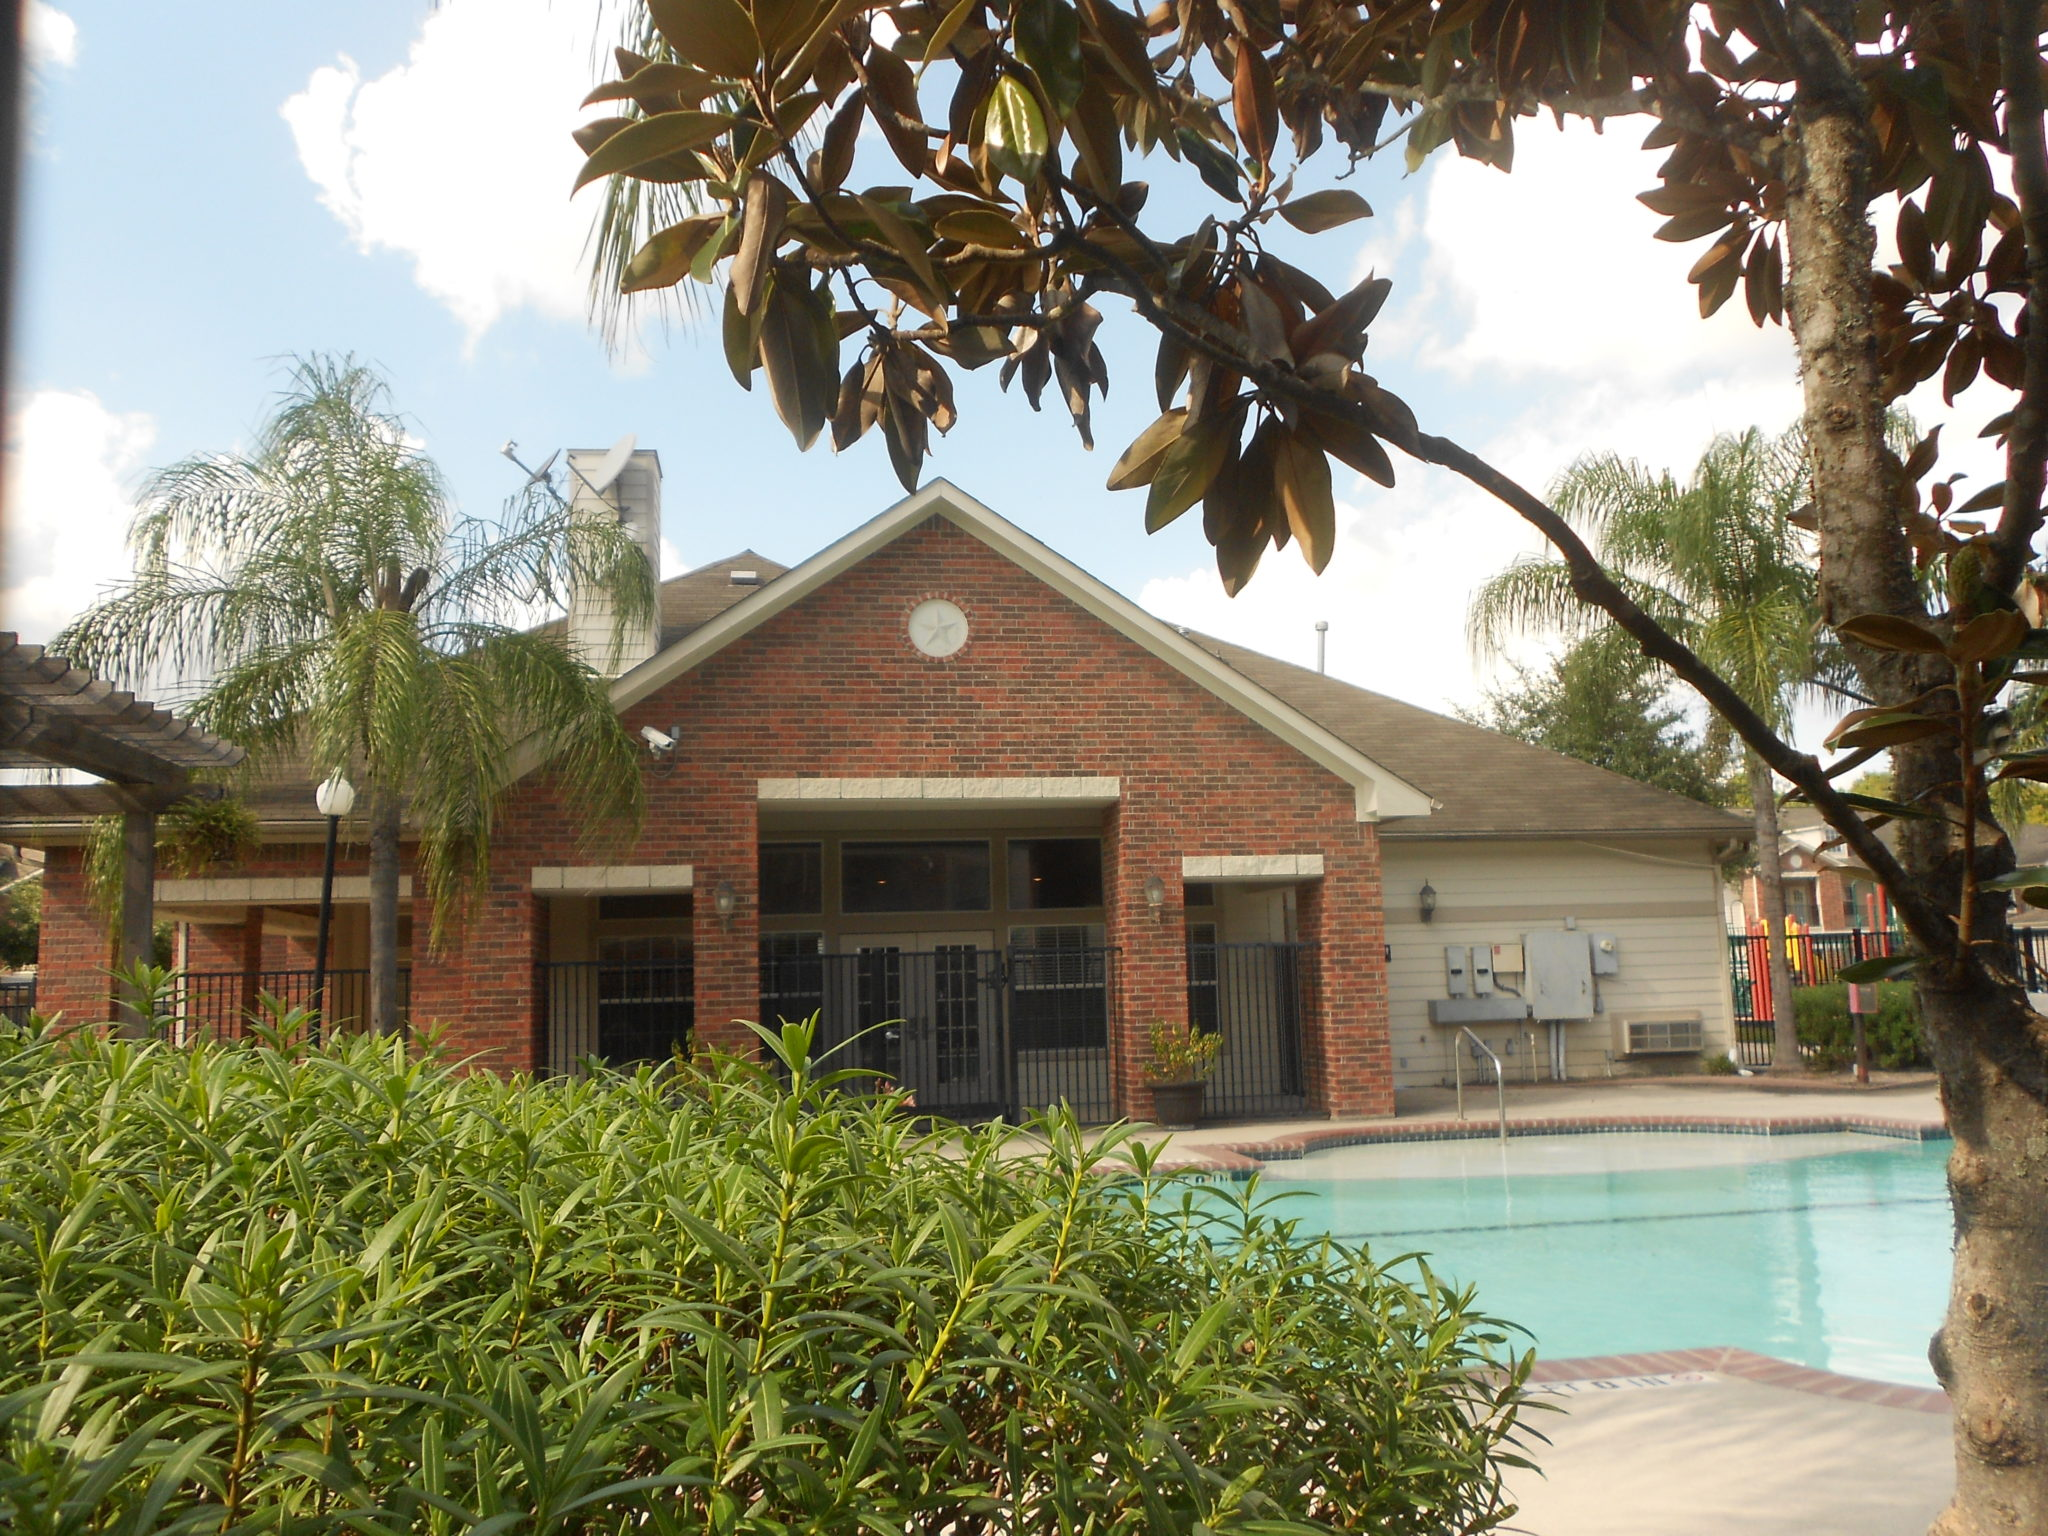 Atascocita Pines pool clubhouse back